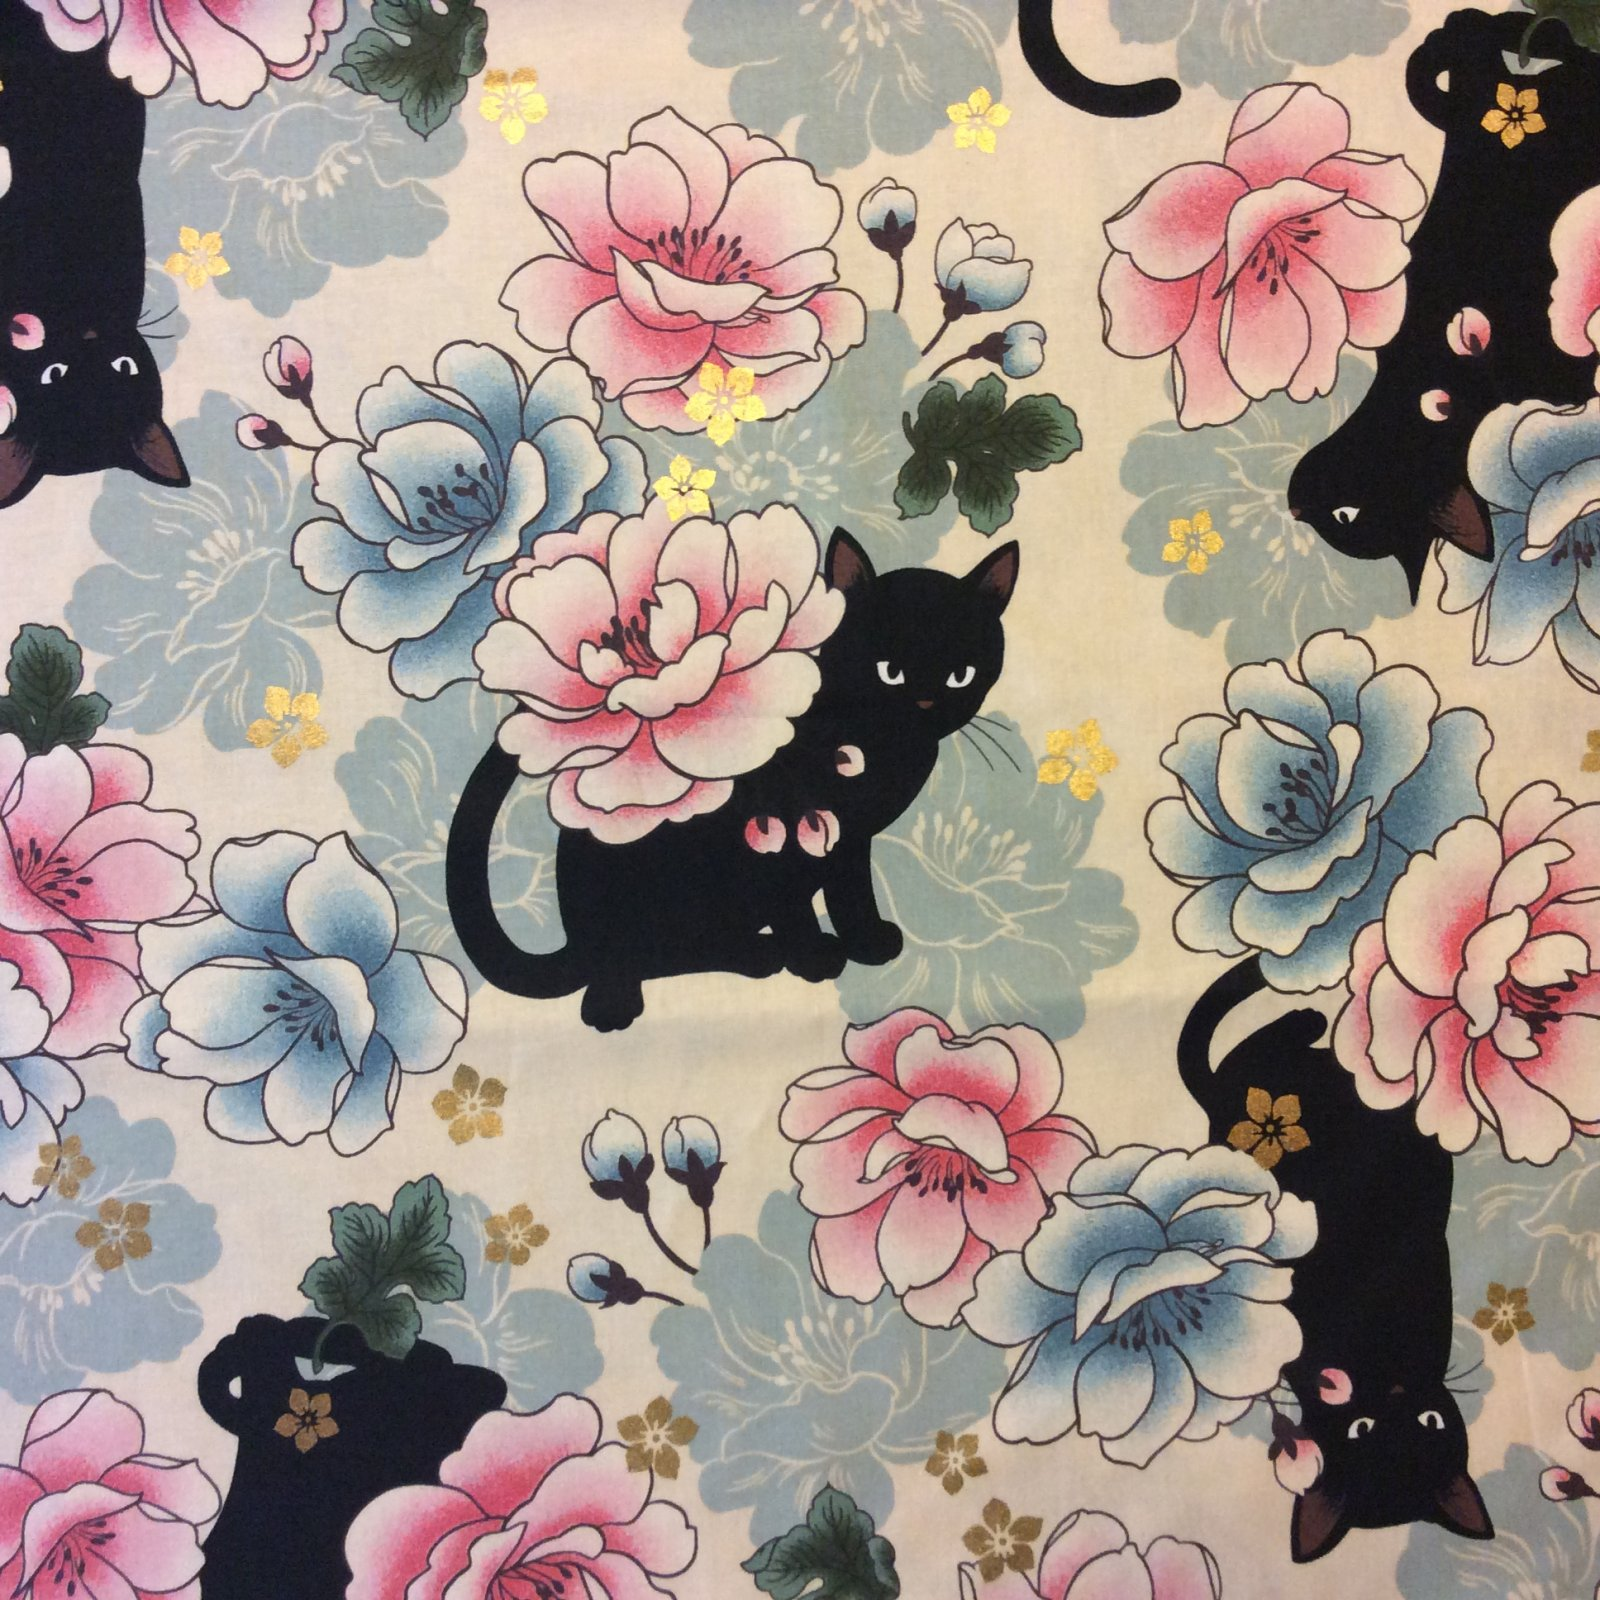 Neko Japanese Kitty Cat Asia Floral China Japan Kimono Quilting Cotton Fabric NT14